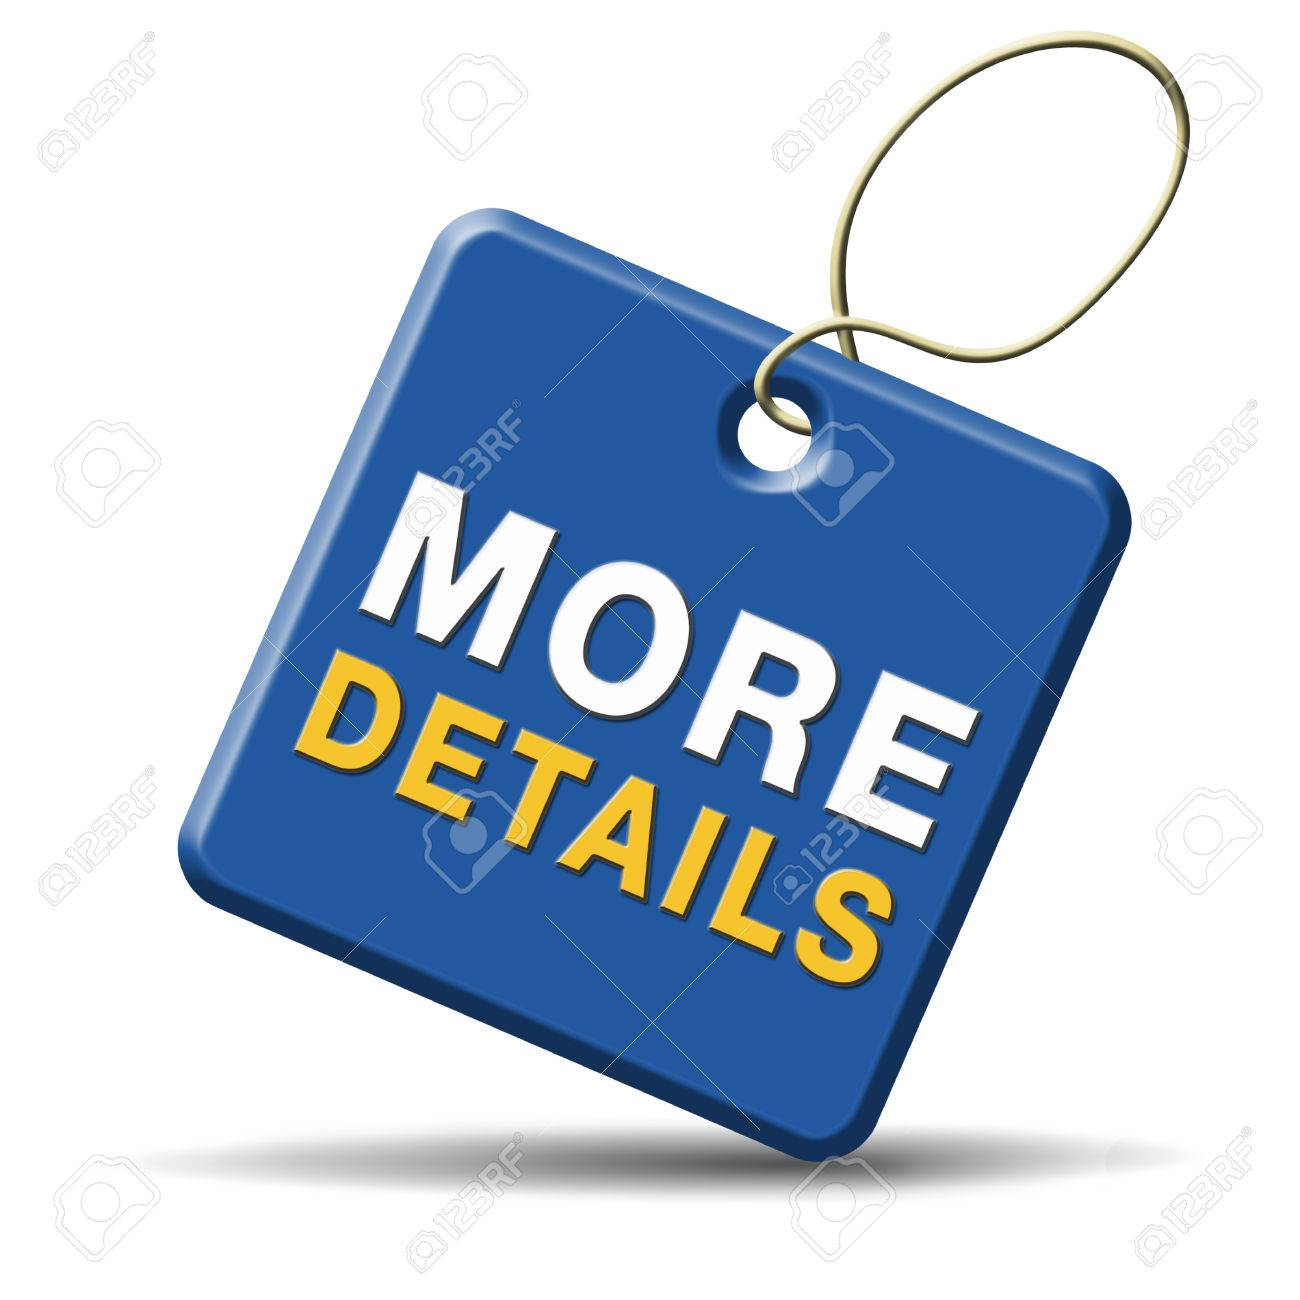 more details and find info icon, button or information sign. Online education or help or support desk. Search learn and find knowledge online. Stock Photo - 22914994